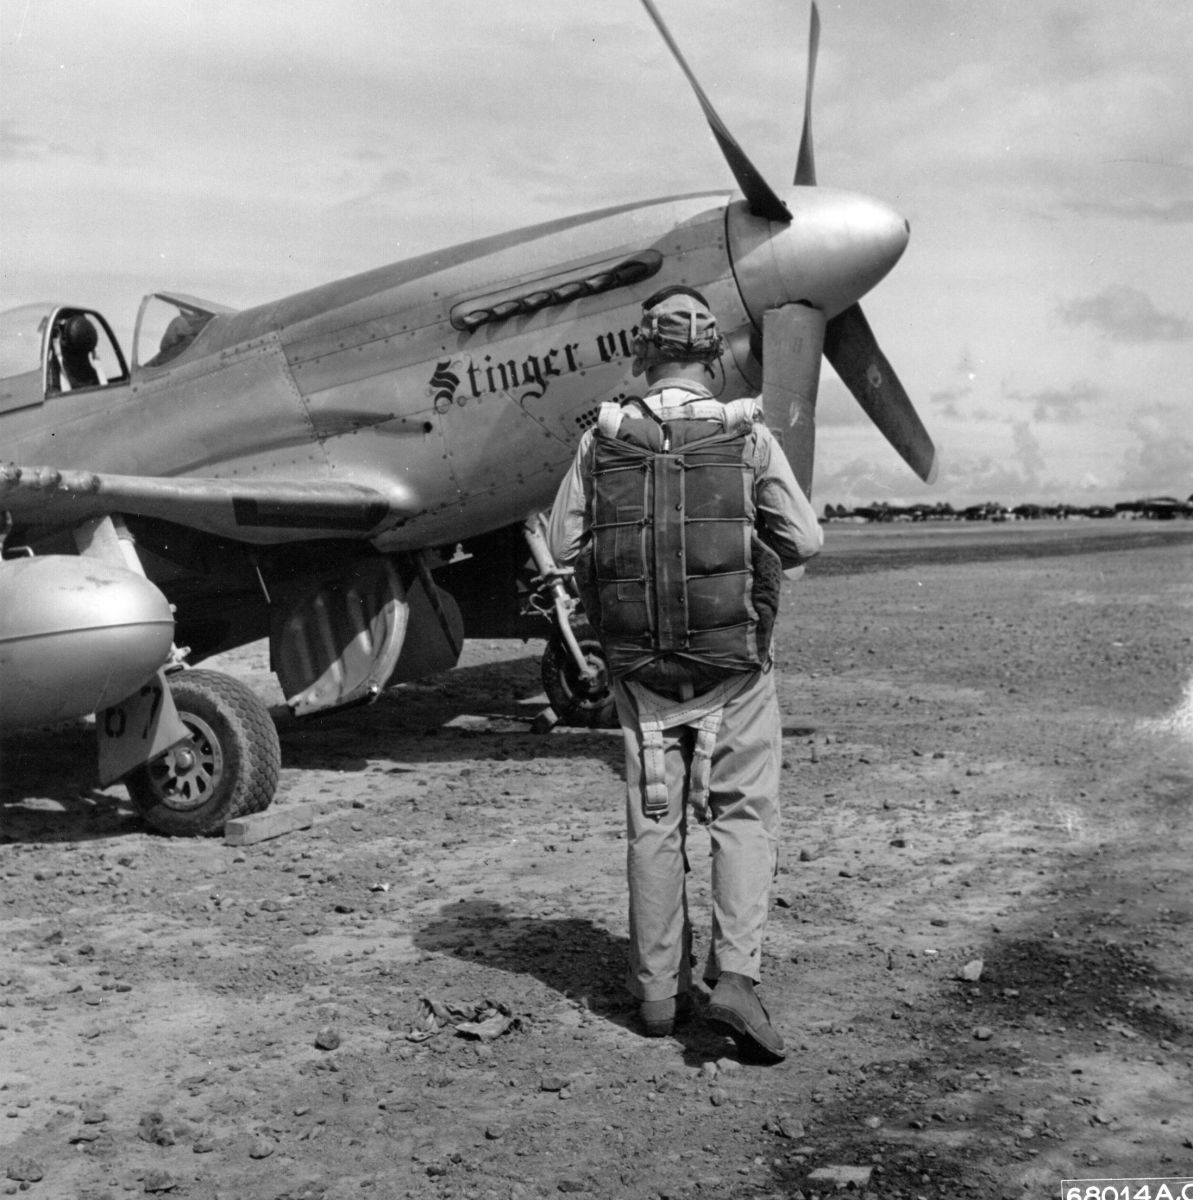 www.7thfighter.com/album/var/albums/Iwo-Jima-Post-Invasion-Ops/342-FH-3A-42341-68014AC_moore_45th_fs_p_67_stinger_vii_463483.JPG